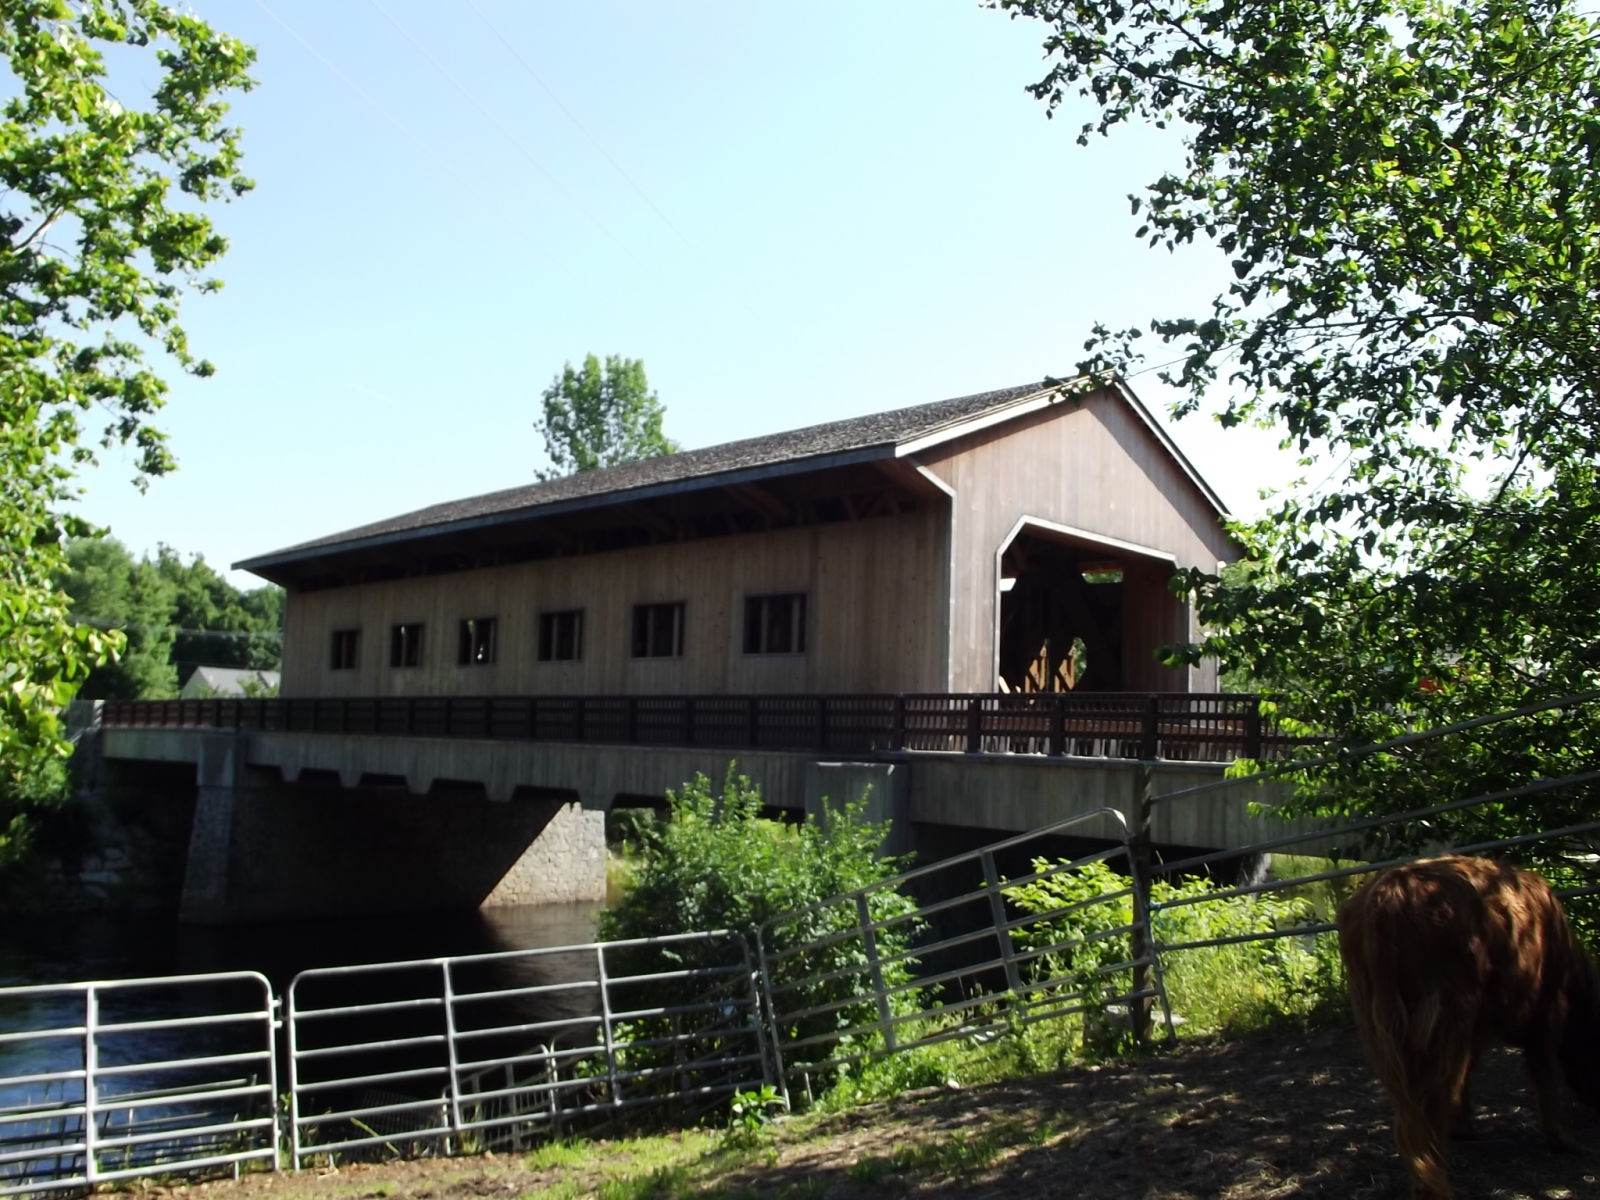 Pepperell Covered Bridge and Overlook (With images